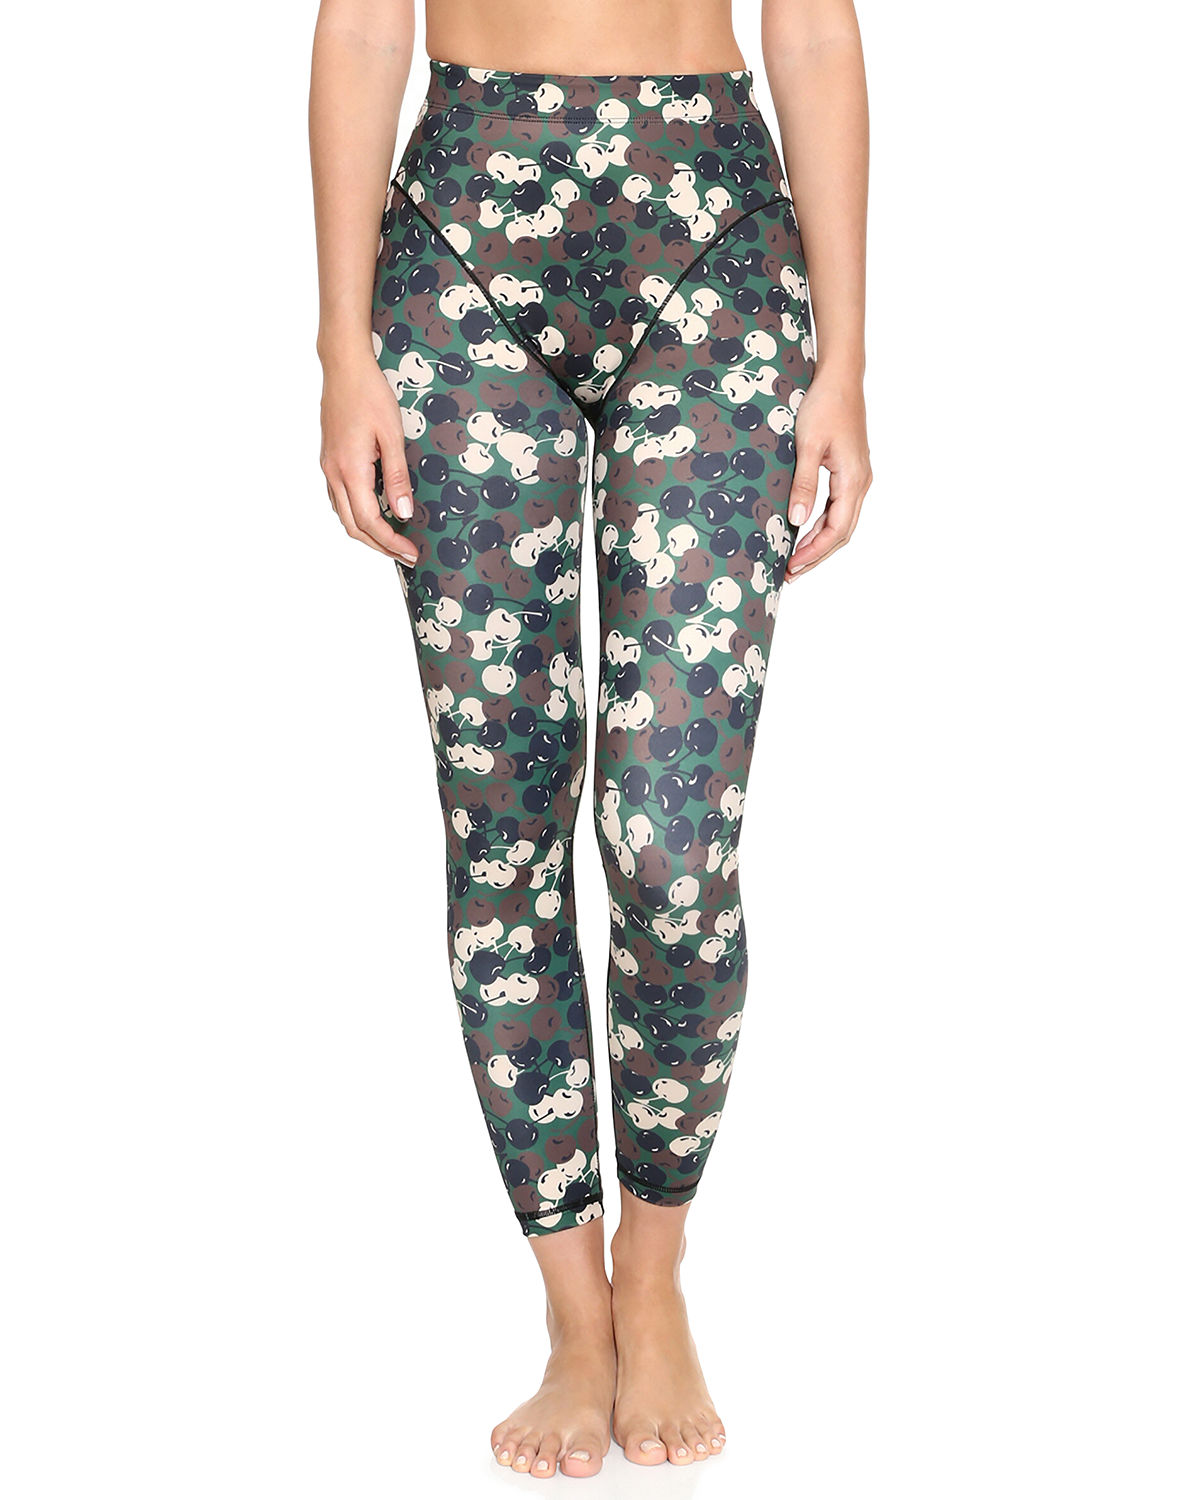 Cherry-Print French-Cut Leggings